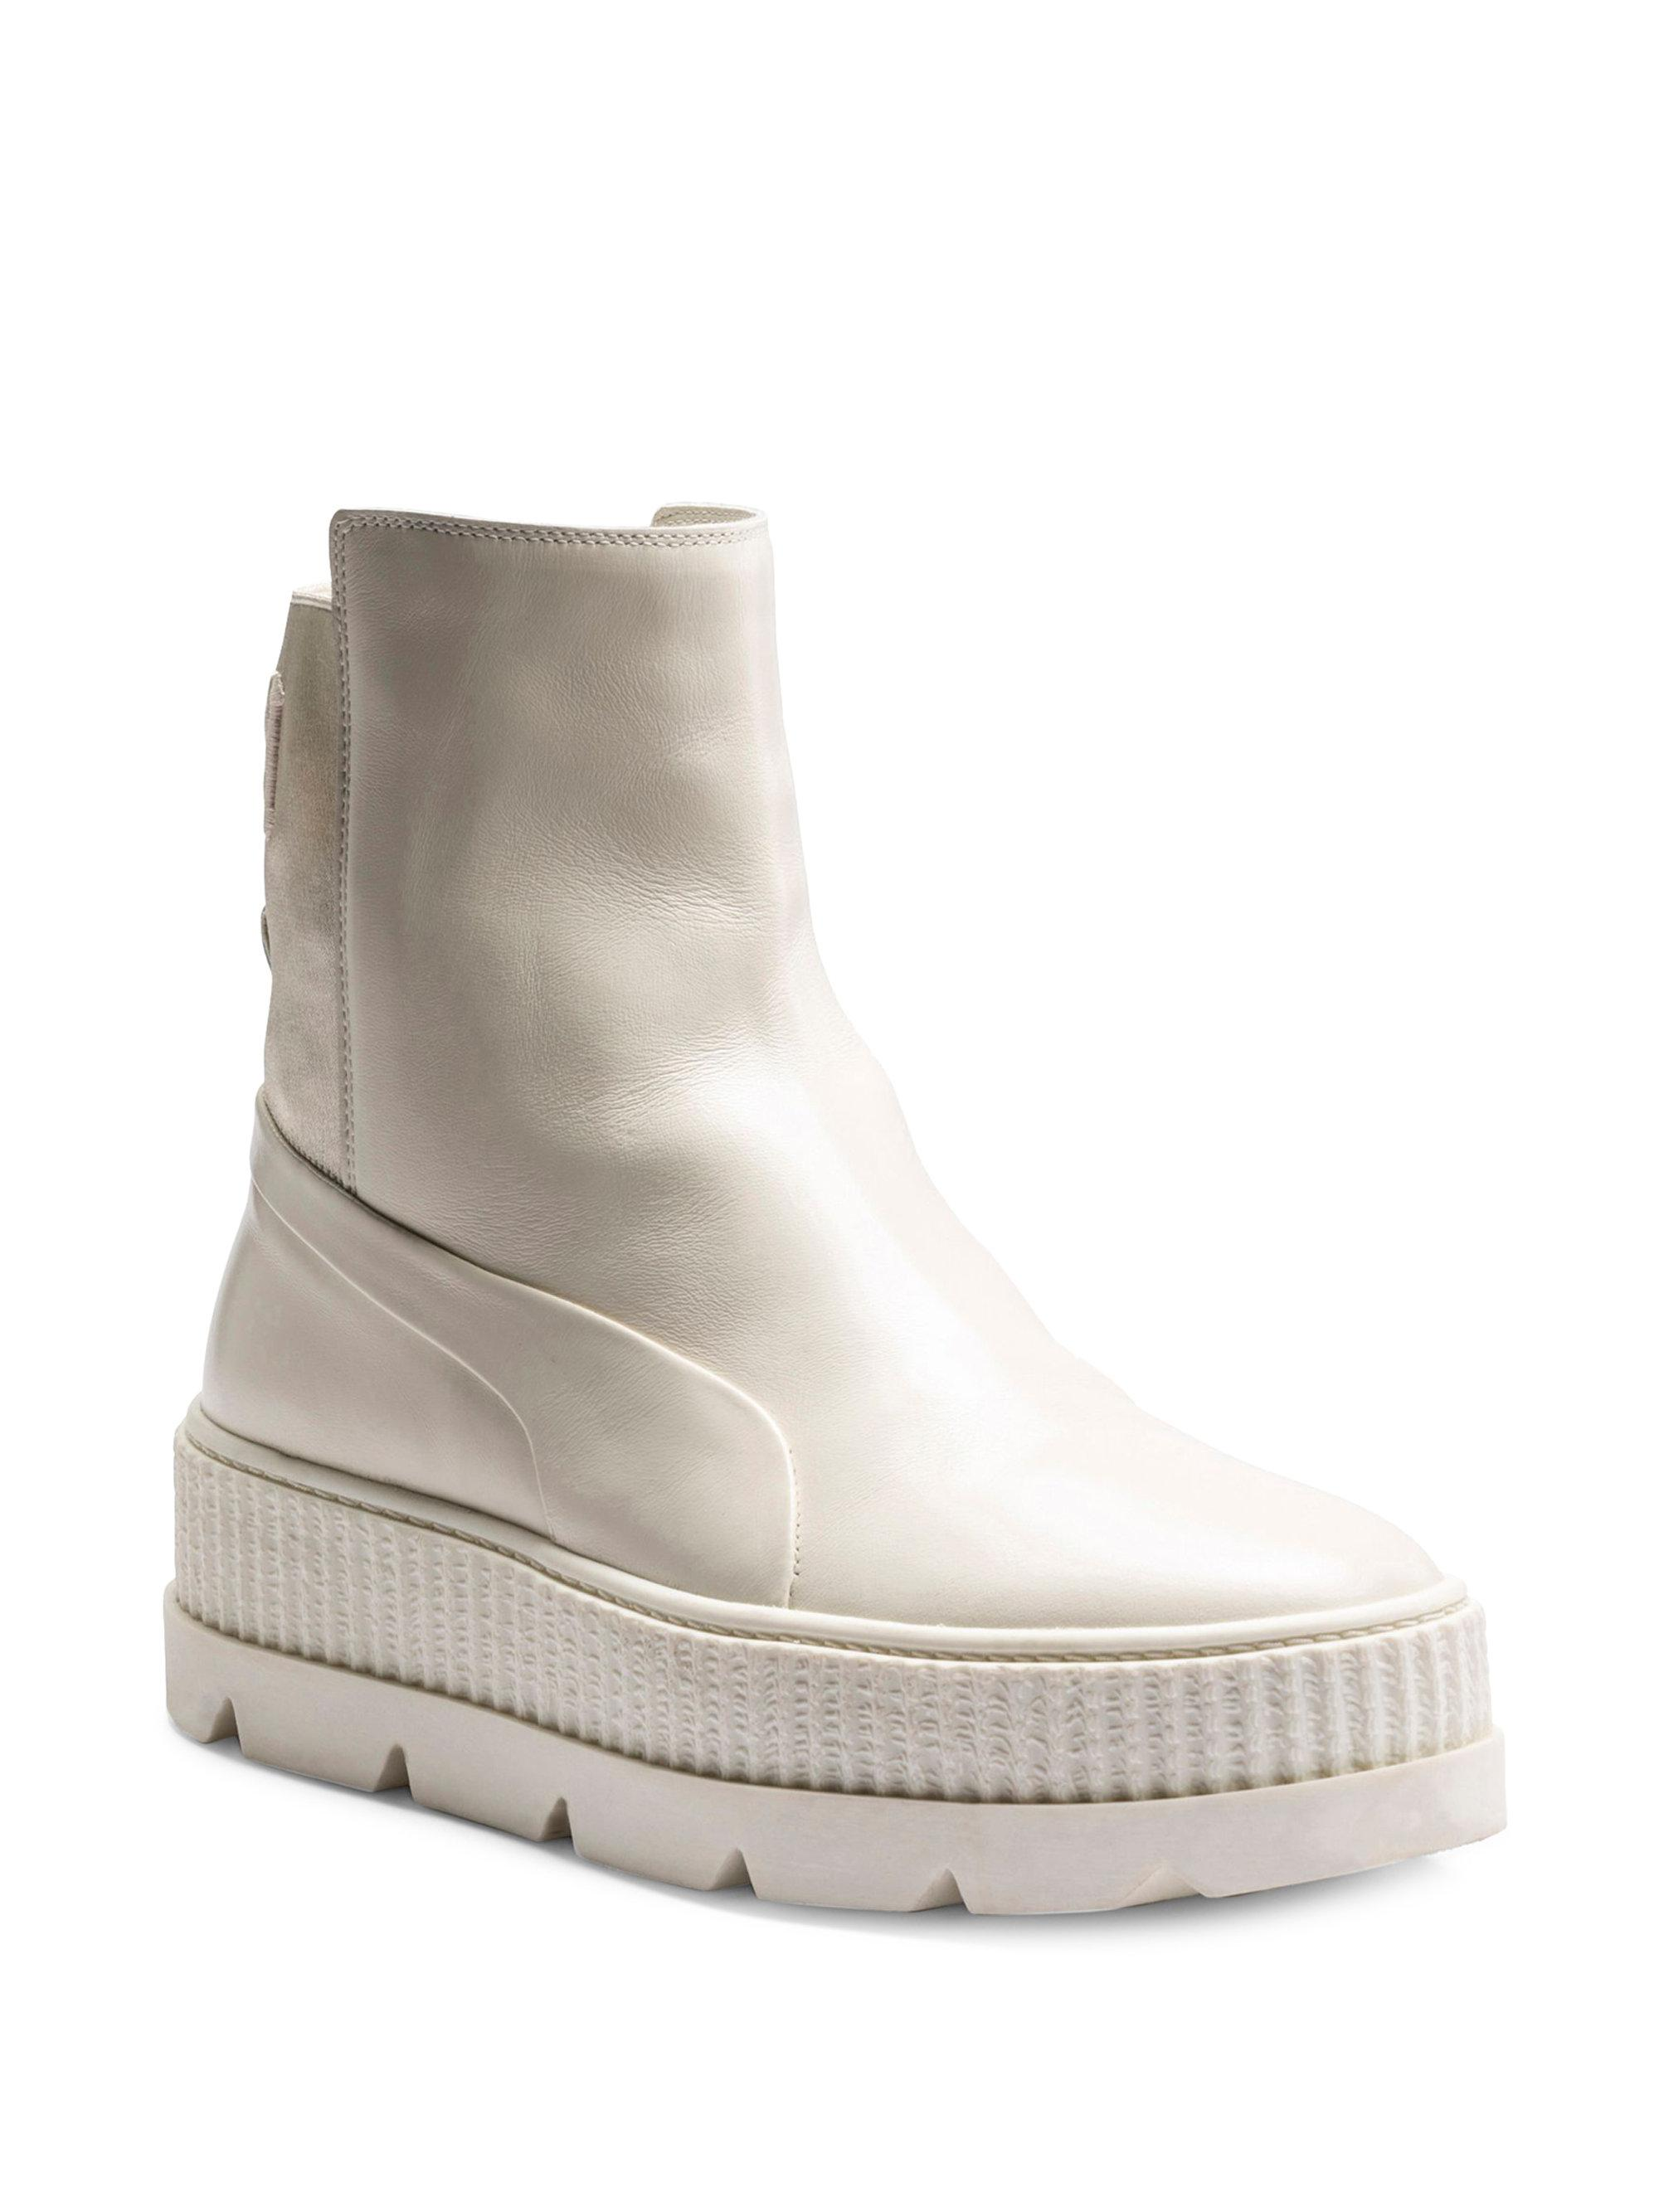 PUMA Leather Chelsea Sneaker Boots in